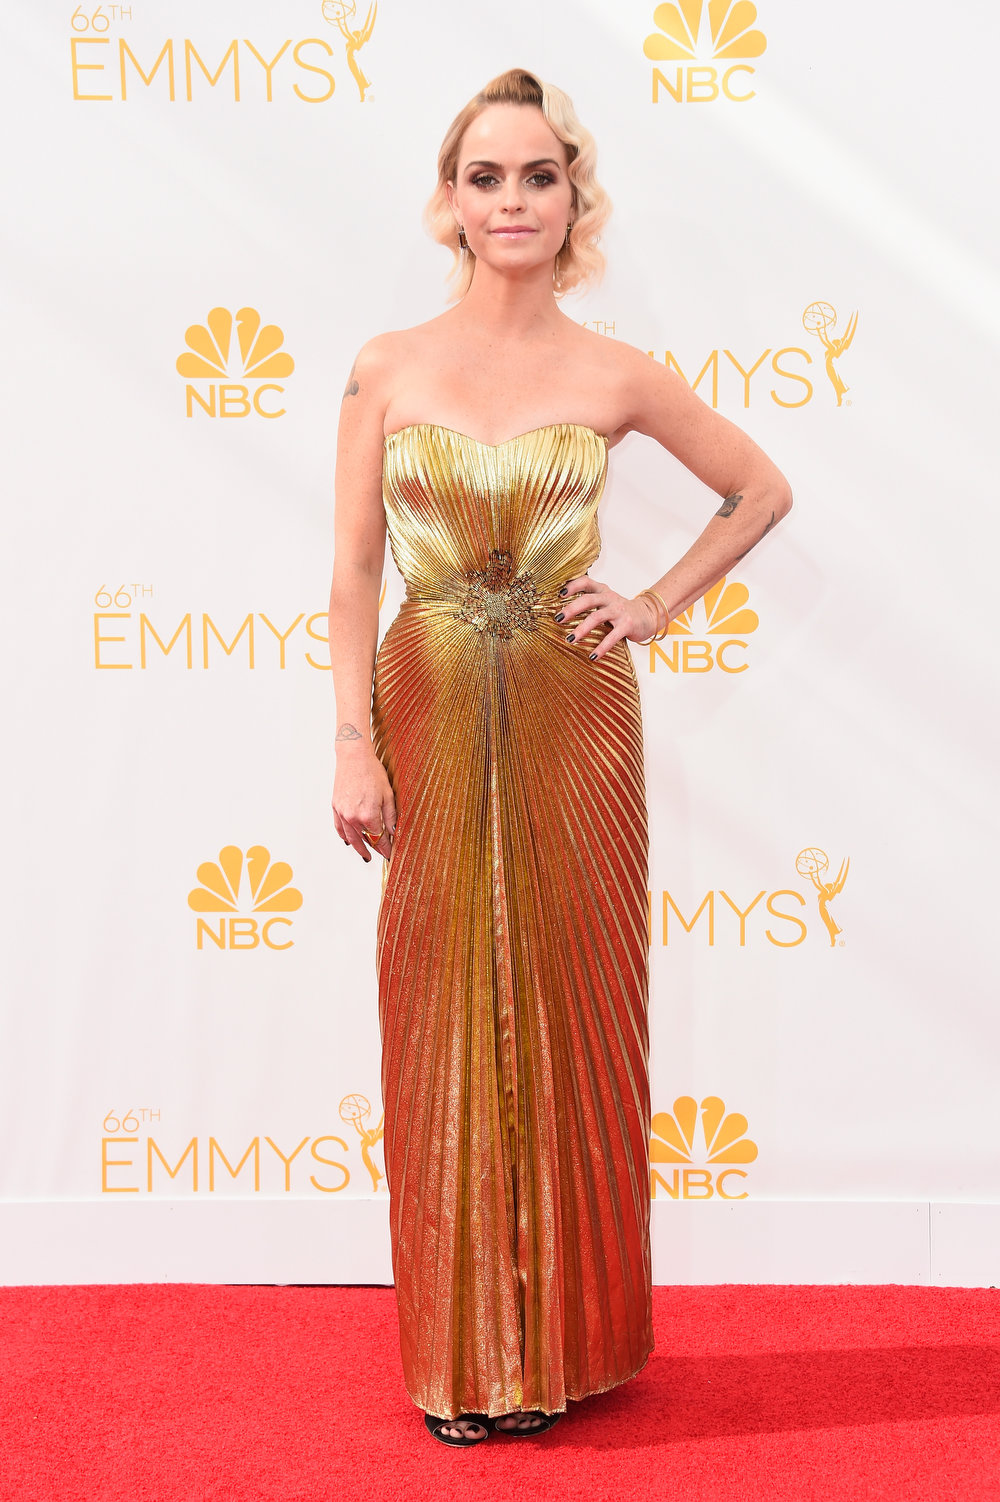 . Actress Taryn Manning attends the 66th Annual Primetime Emmy Awards held at Nokia Theatre L.A. Live on August 25, 2014 in Los Angeles, California.  (Photo by Frazer Harrison/Getty Images)